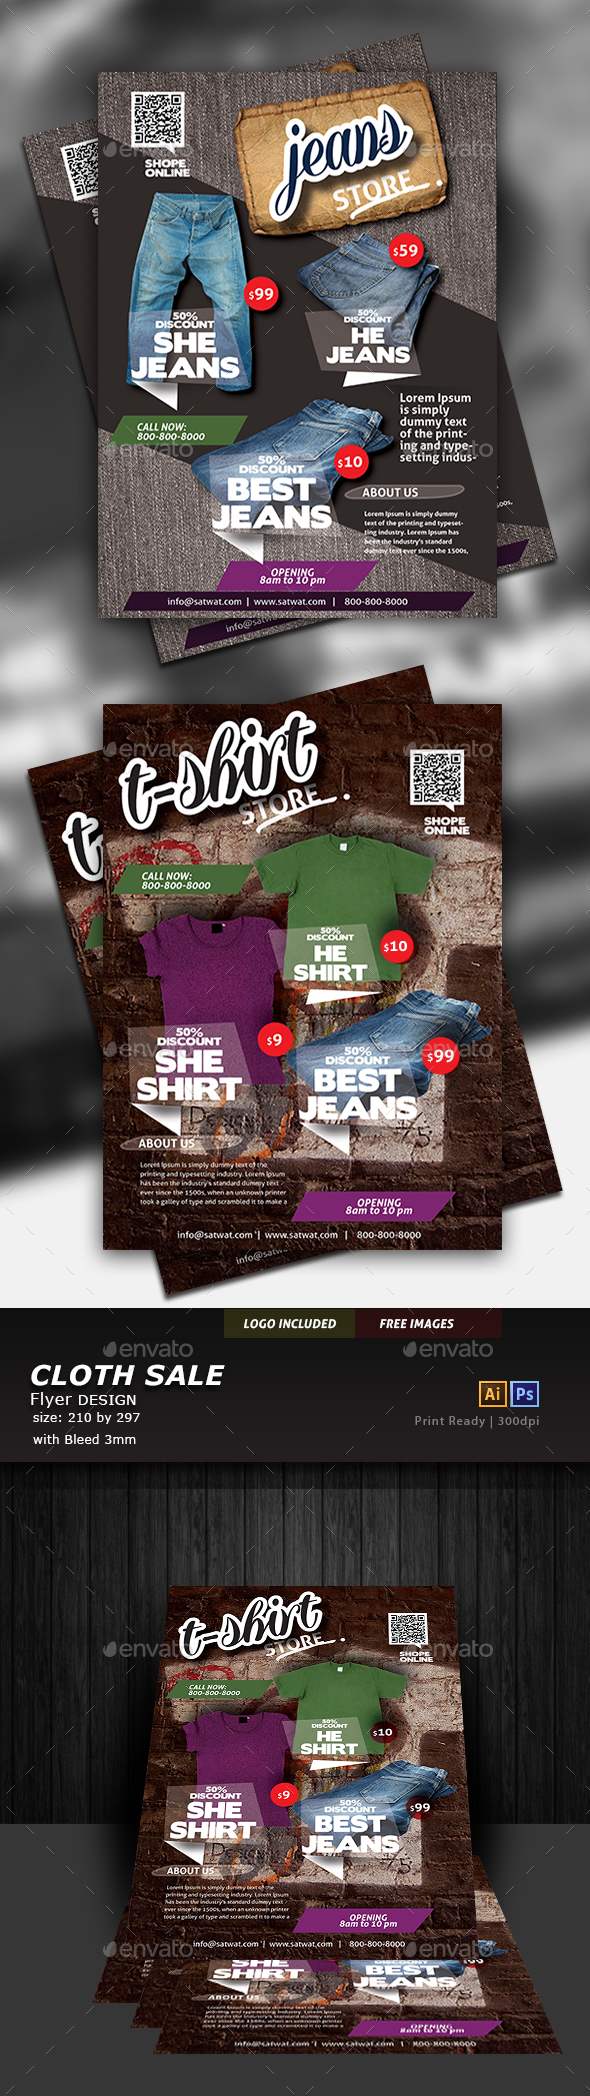 T-shirt Flyer - Commerce Flyers